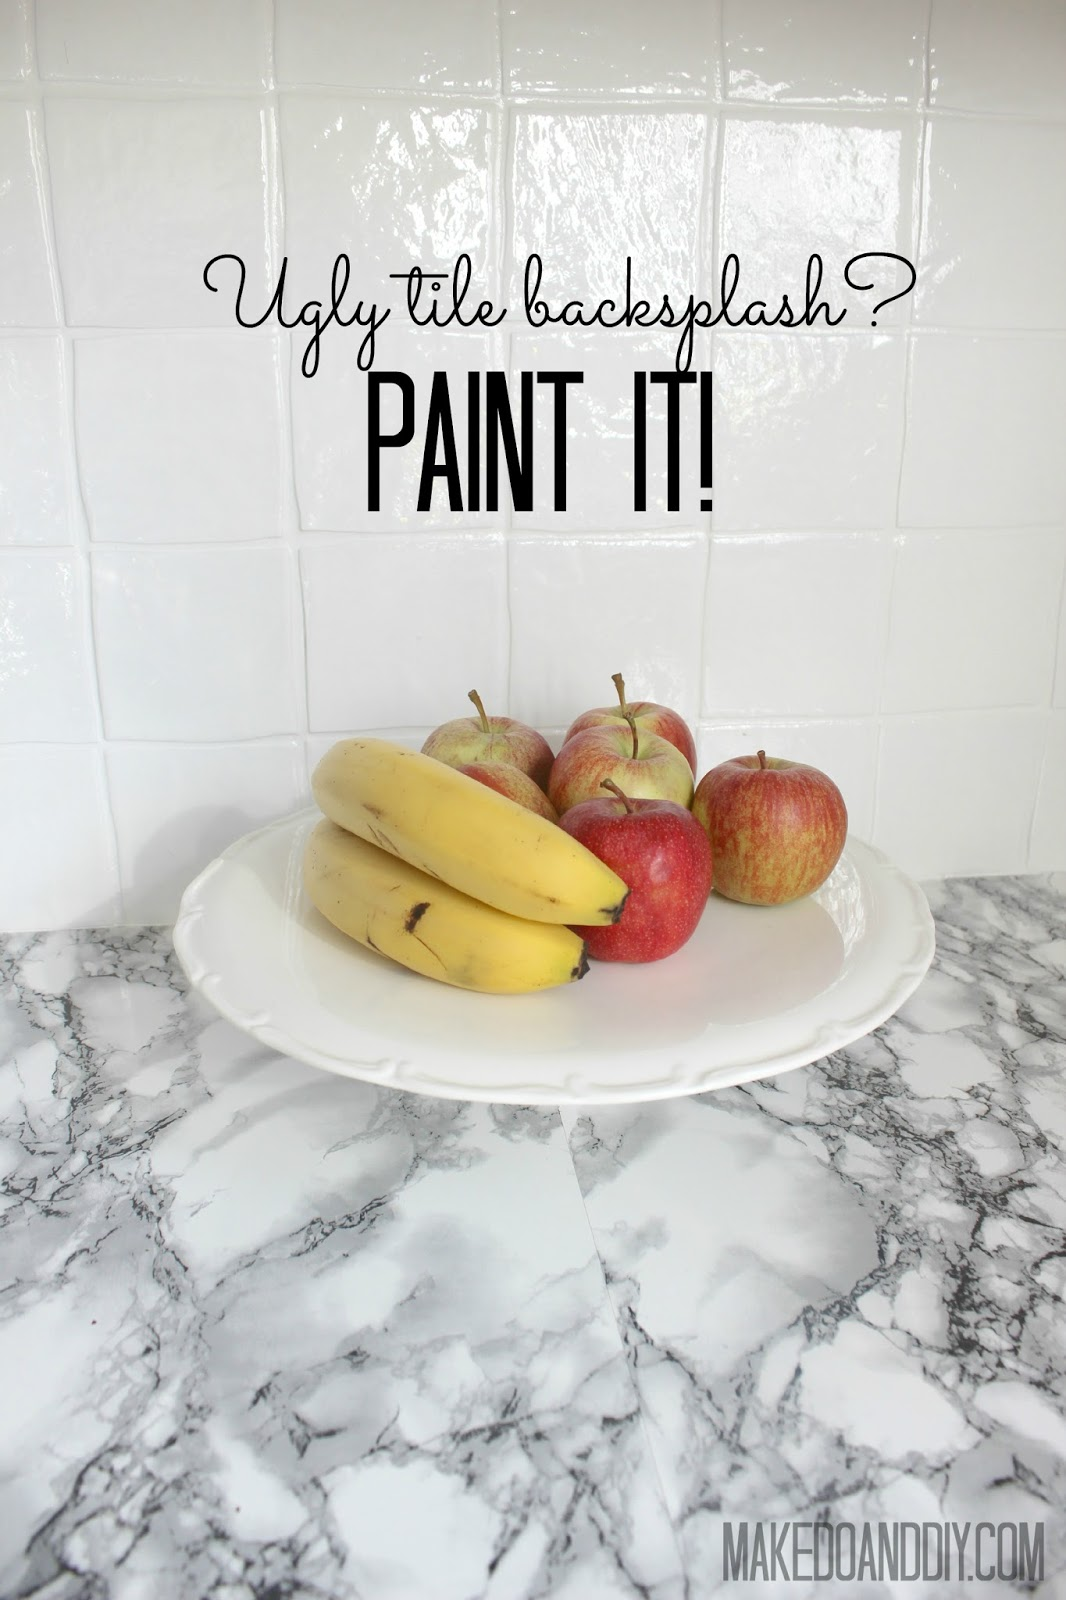 Painted tile backsplash cover those ugly tiles make do and diy painted kitchen tile backsplash cheap and easy update for dated tile makedoanddiy dailygadgetfo Choice Image